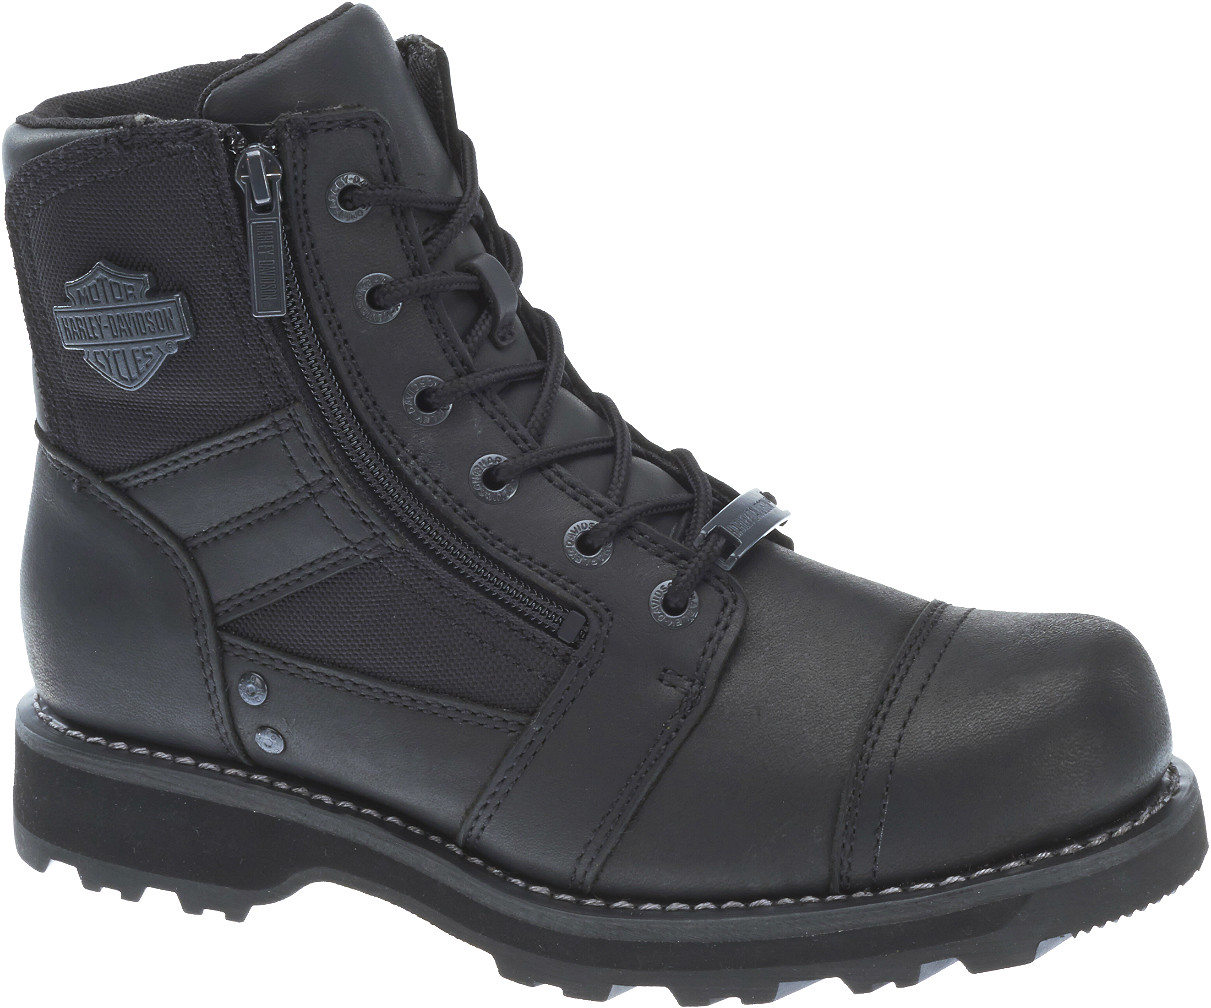 Harley-Davidson® Men's Bonham Motorcycle Riding Boots | Quality Ventilation